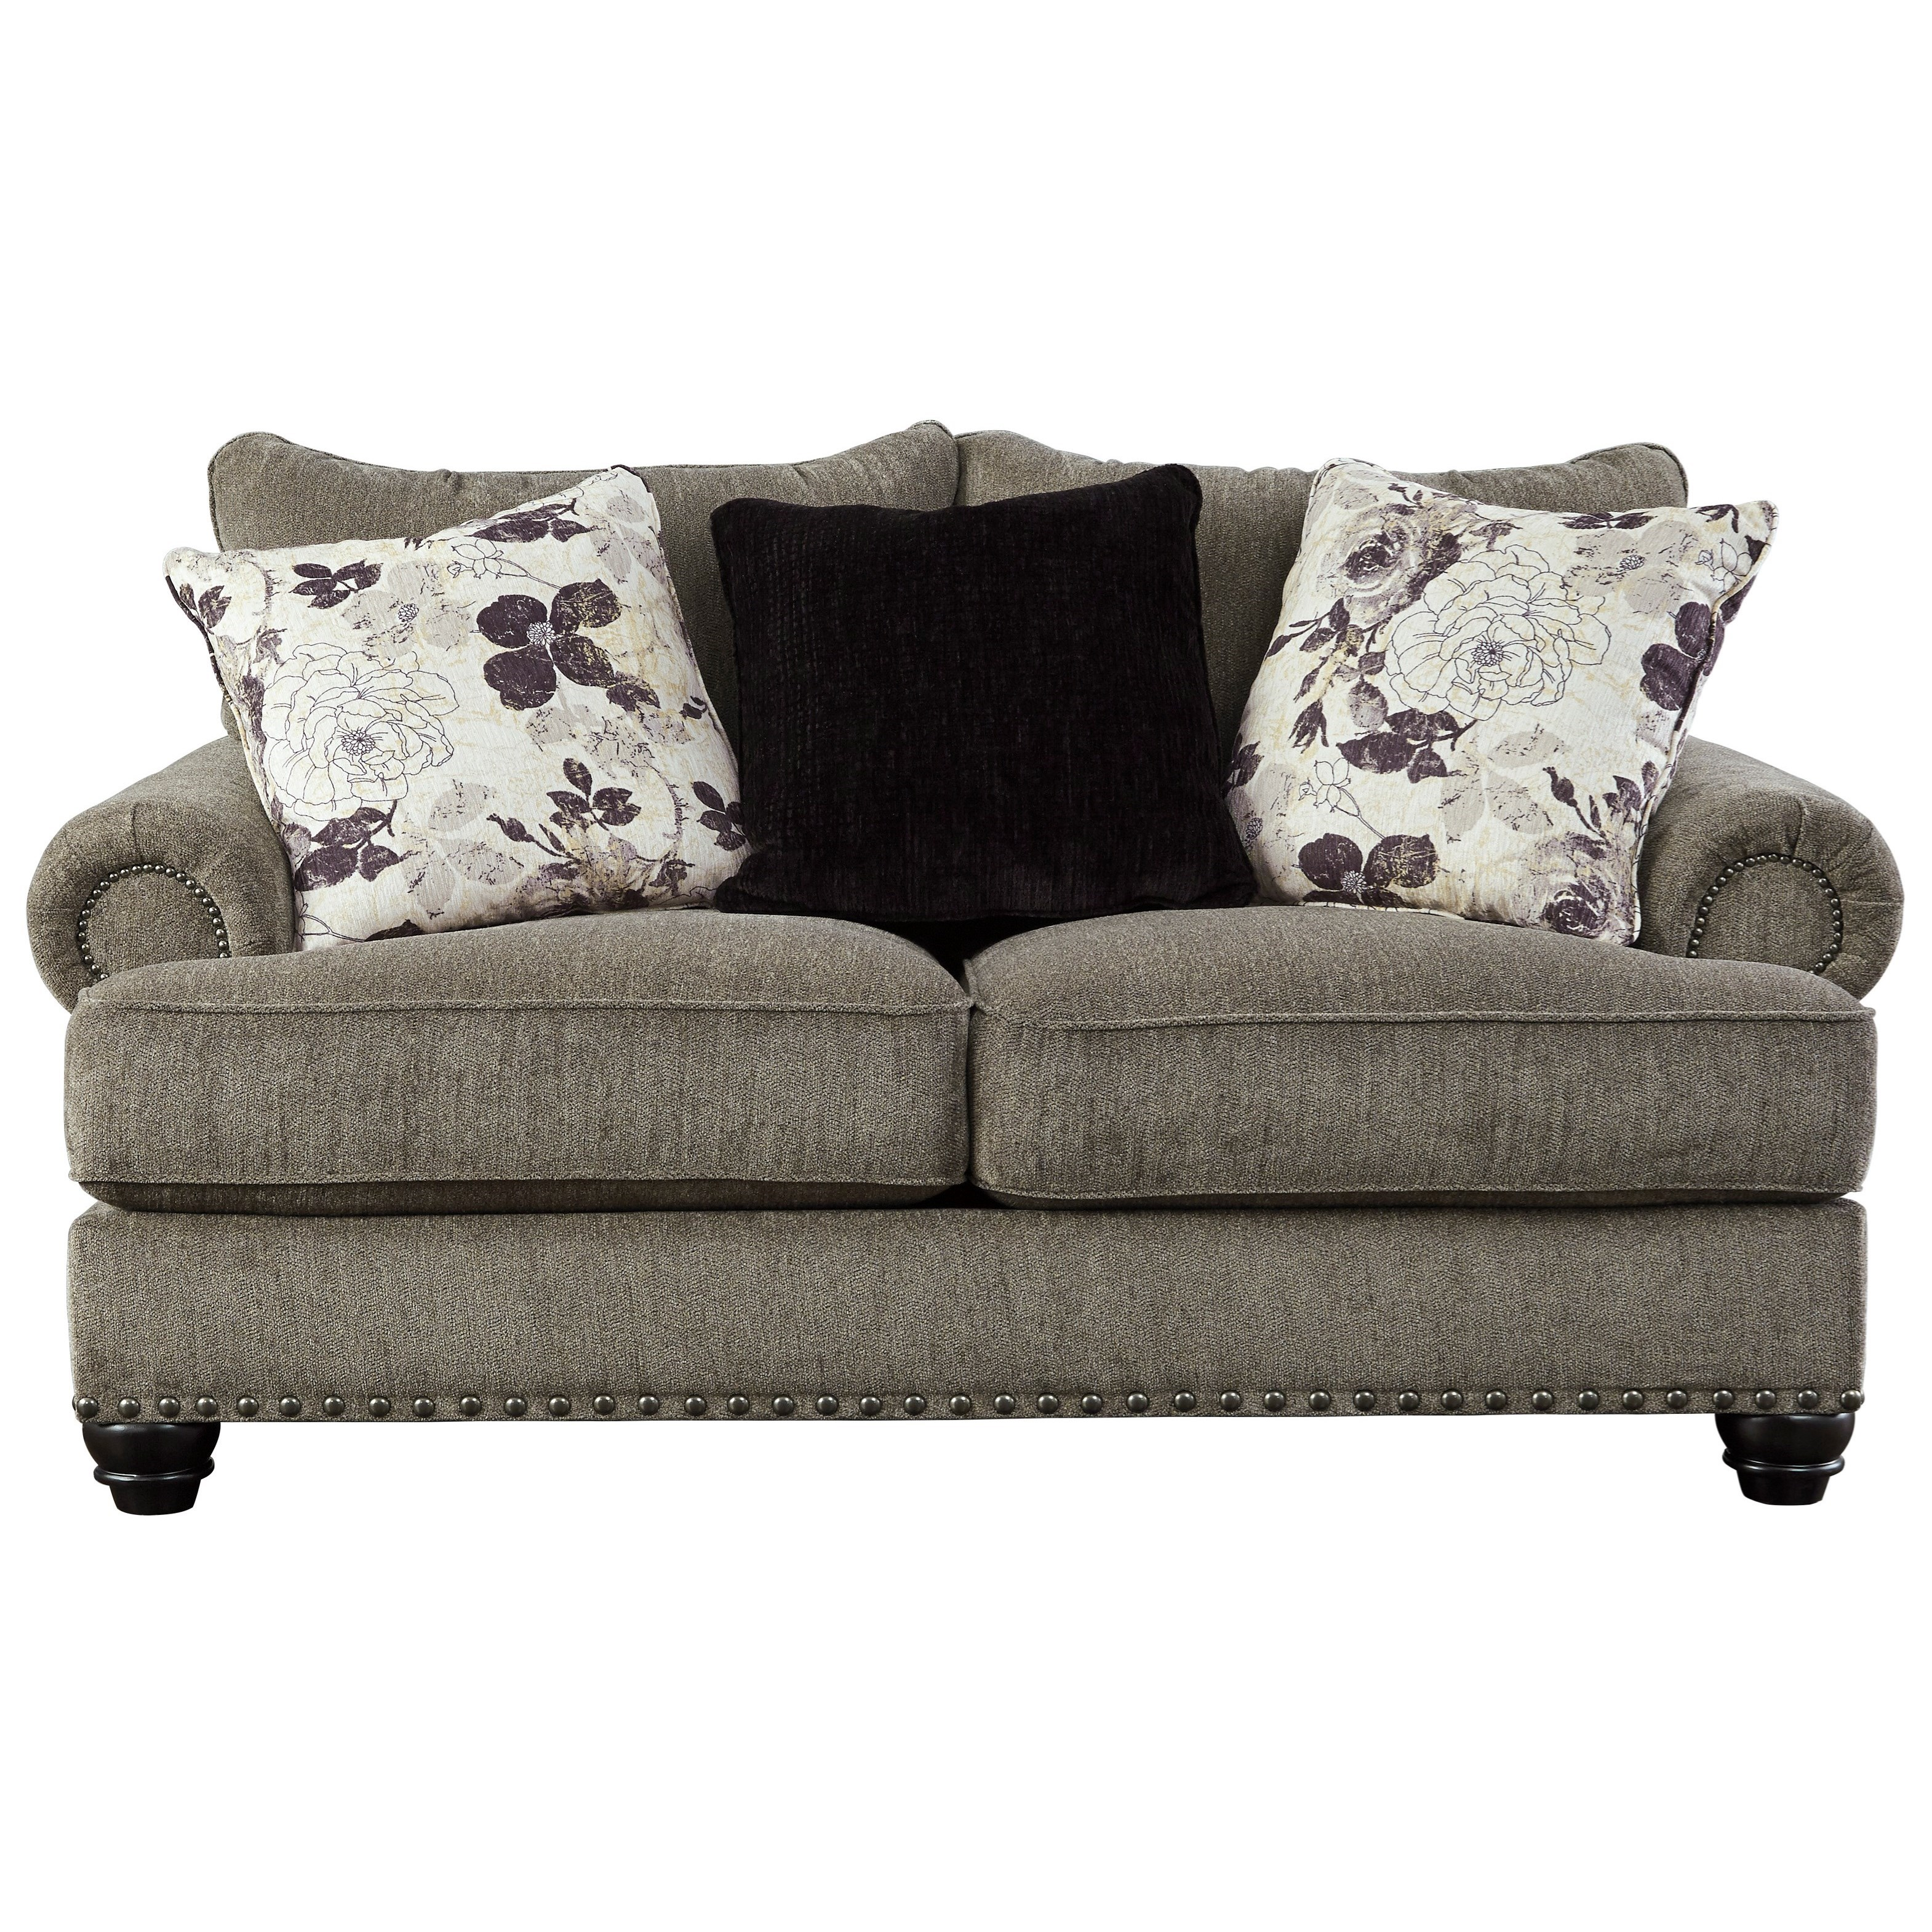 Sembler Loveseat by Benchcraft at Catalog Outlet